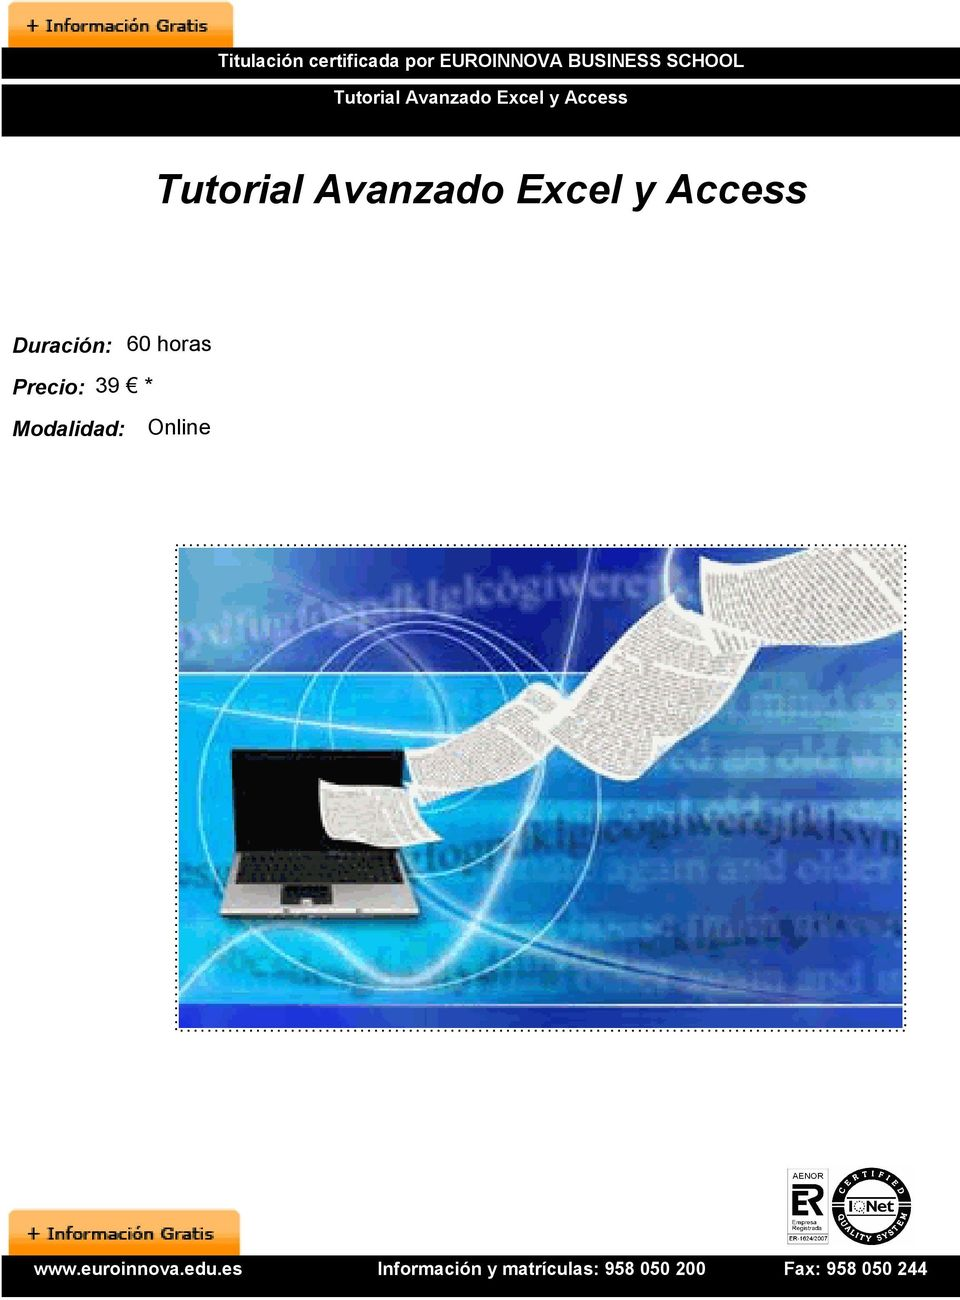 Access Tutorial Avanzado Excel y Access